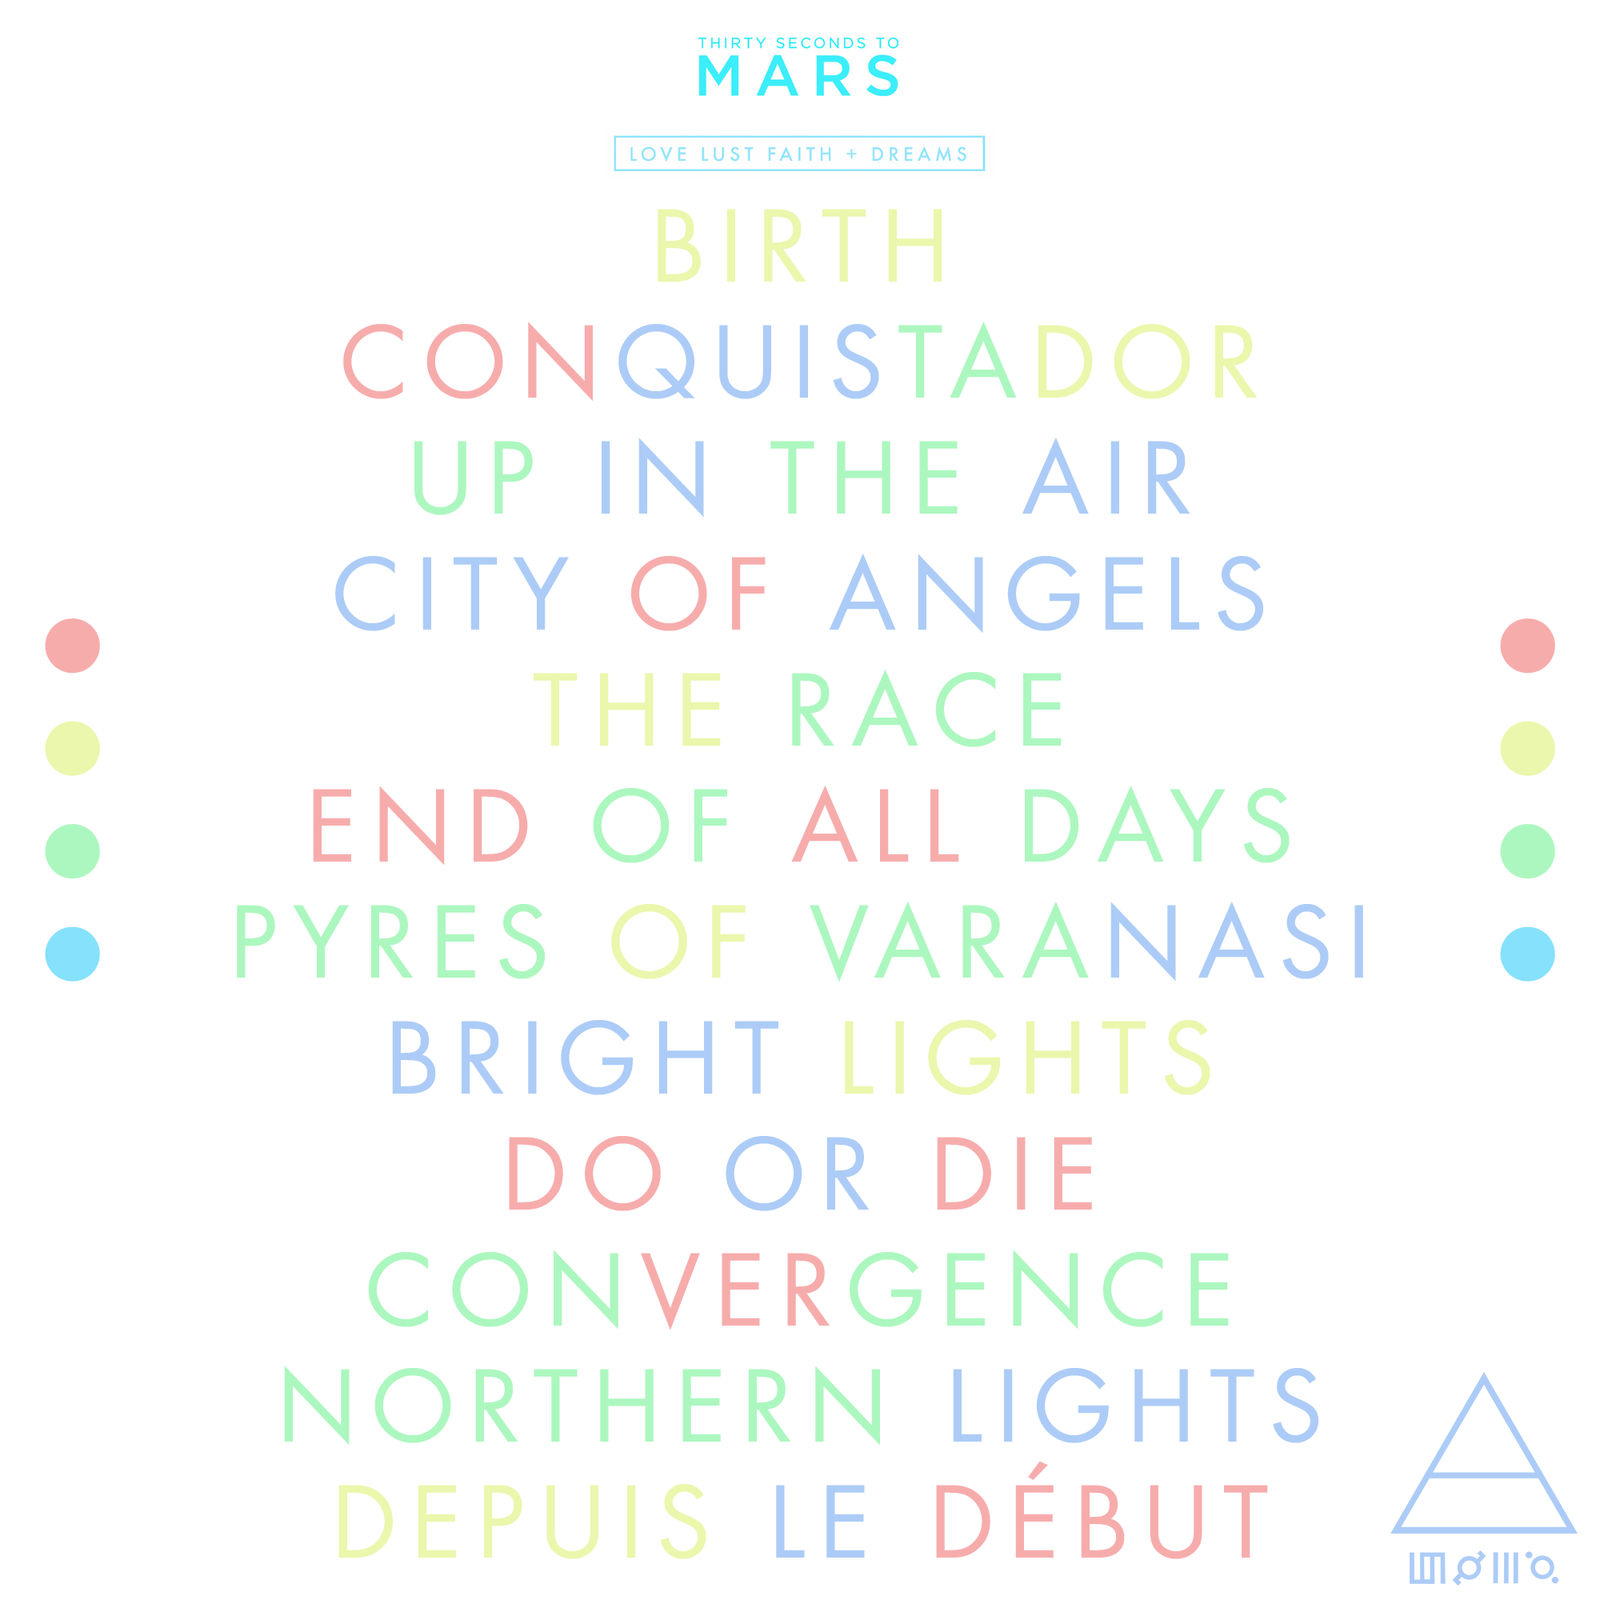 30 seconds to mars love lust faith and dreams album